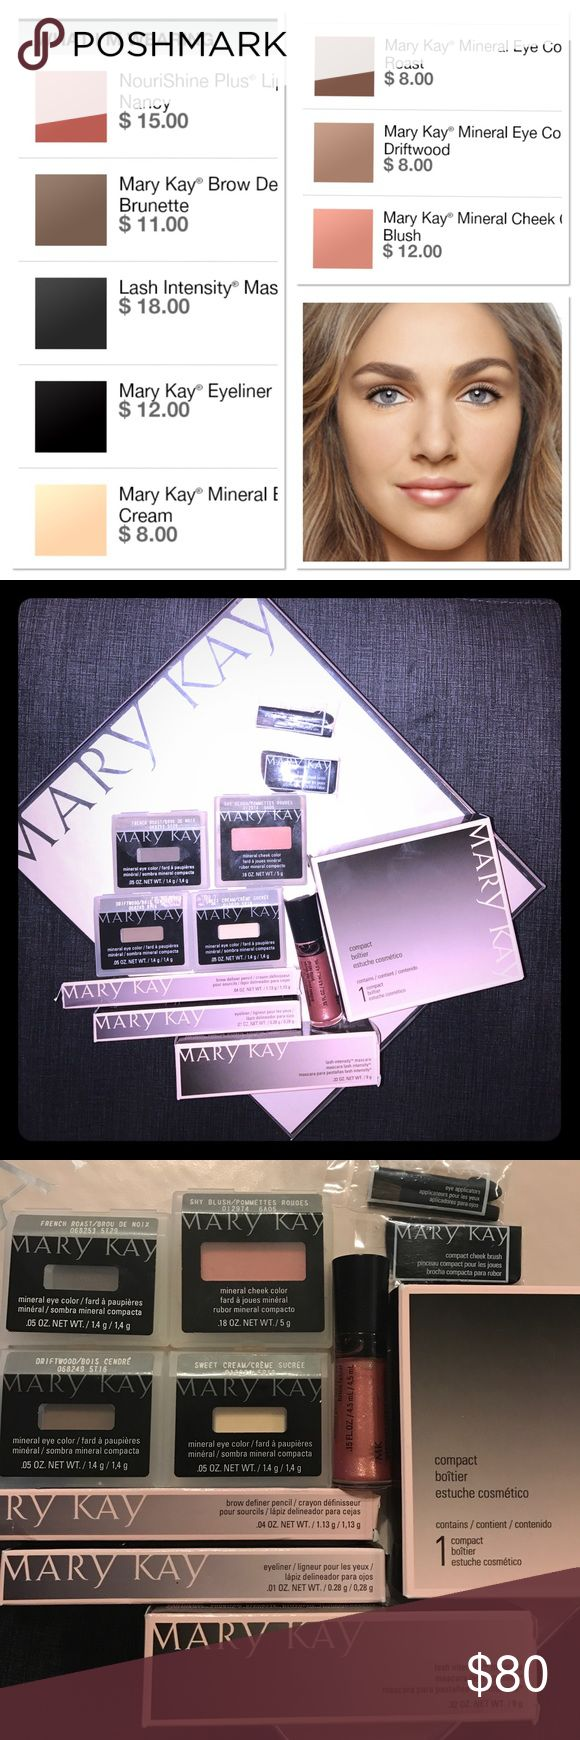 MaryKay - Get This Look Complete Natural Look that can be worn day or night! Included in this bundle are 3 Mineral Eye Shadows- Sweet Cream, French Roast & Driftwood. 1 - Mineral Cheek Color in Sky Blush, Black Eye Liner, Lash Intensity Mascara-black, 1- Brow Defining Pencil in Brunette, 1- NouriShine Lip Gloss in Fancy Nancy. MaryKay Compact to safety store and take with you the 3 shadows, check color, applicators and lip color. Total Retail Value $115.00! Mary Kay Makeup